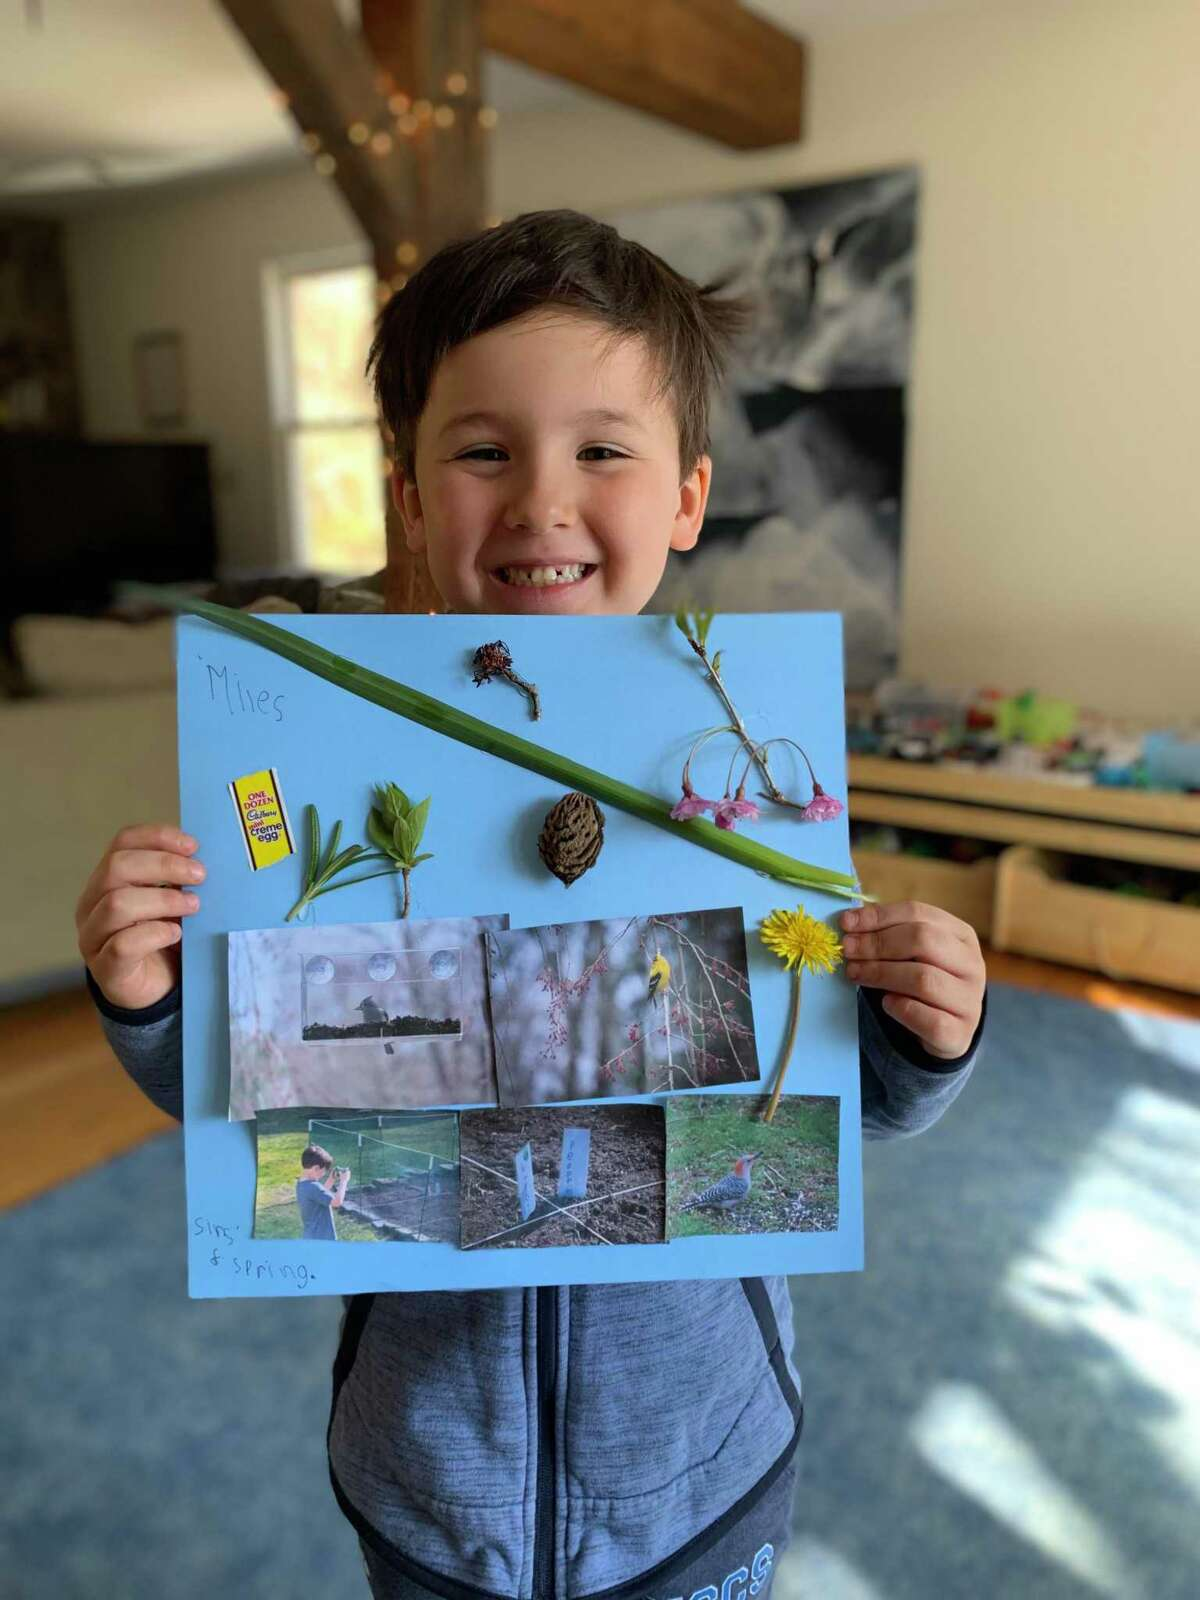 Country School kindergarteners shared jokes and artwork with class friends and family in honor of Earth Day, April 22. The activities were part of a day of celebration for members of the pre-k through grade 9 school.